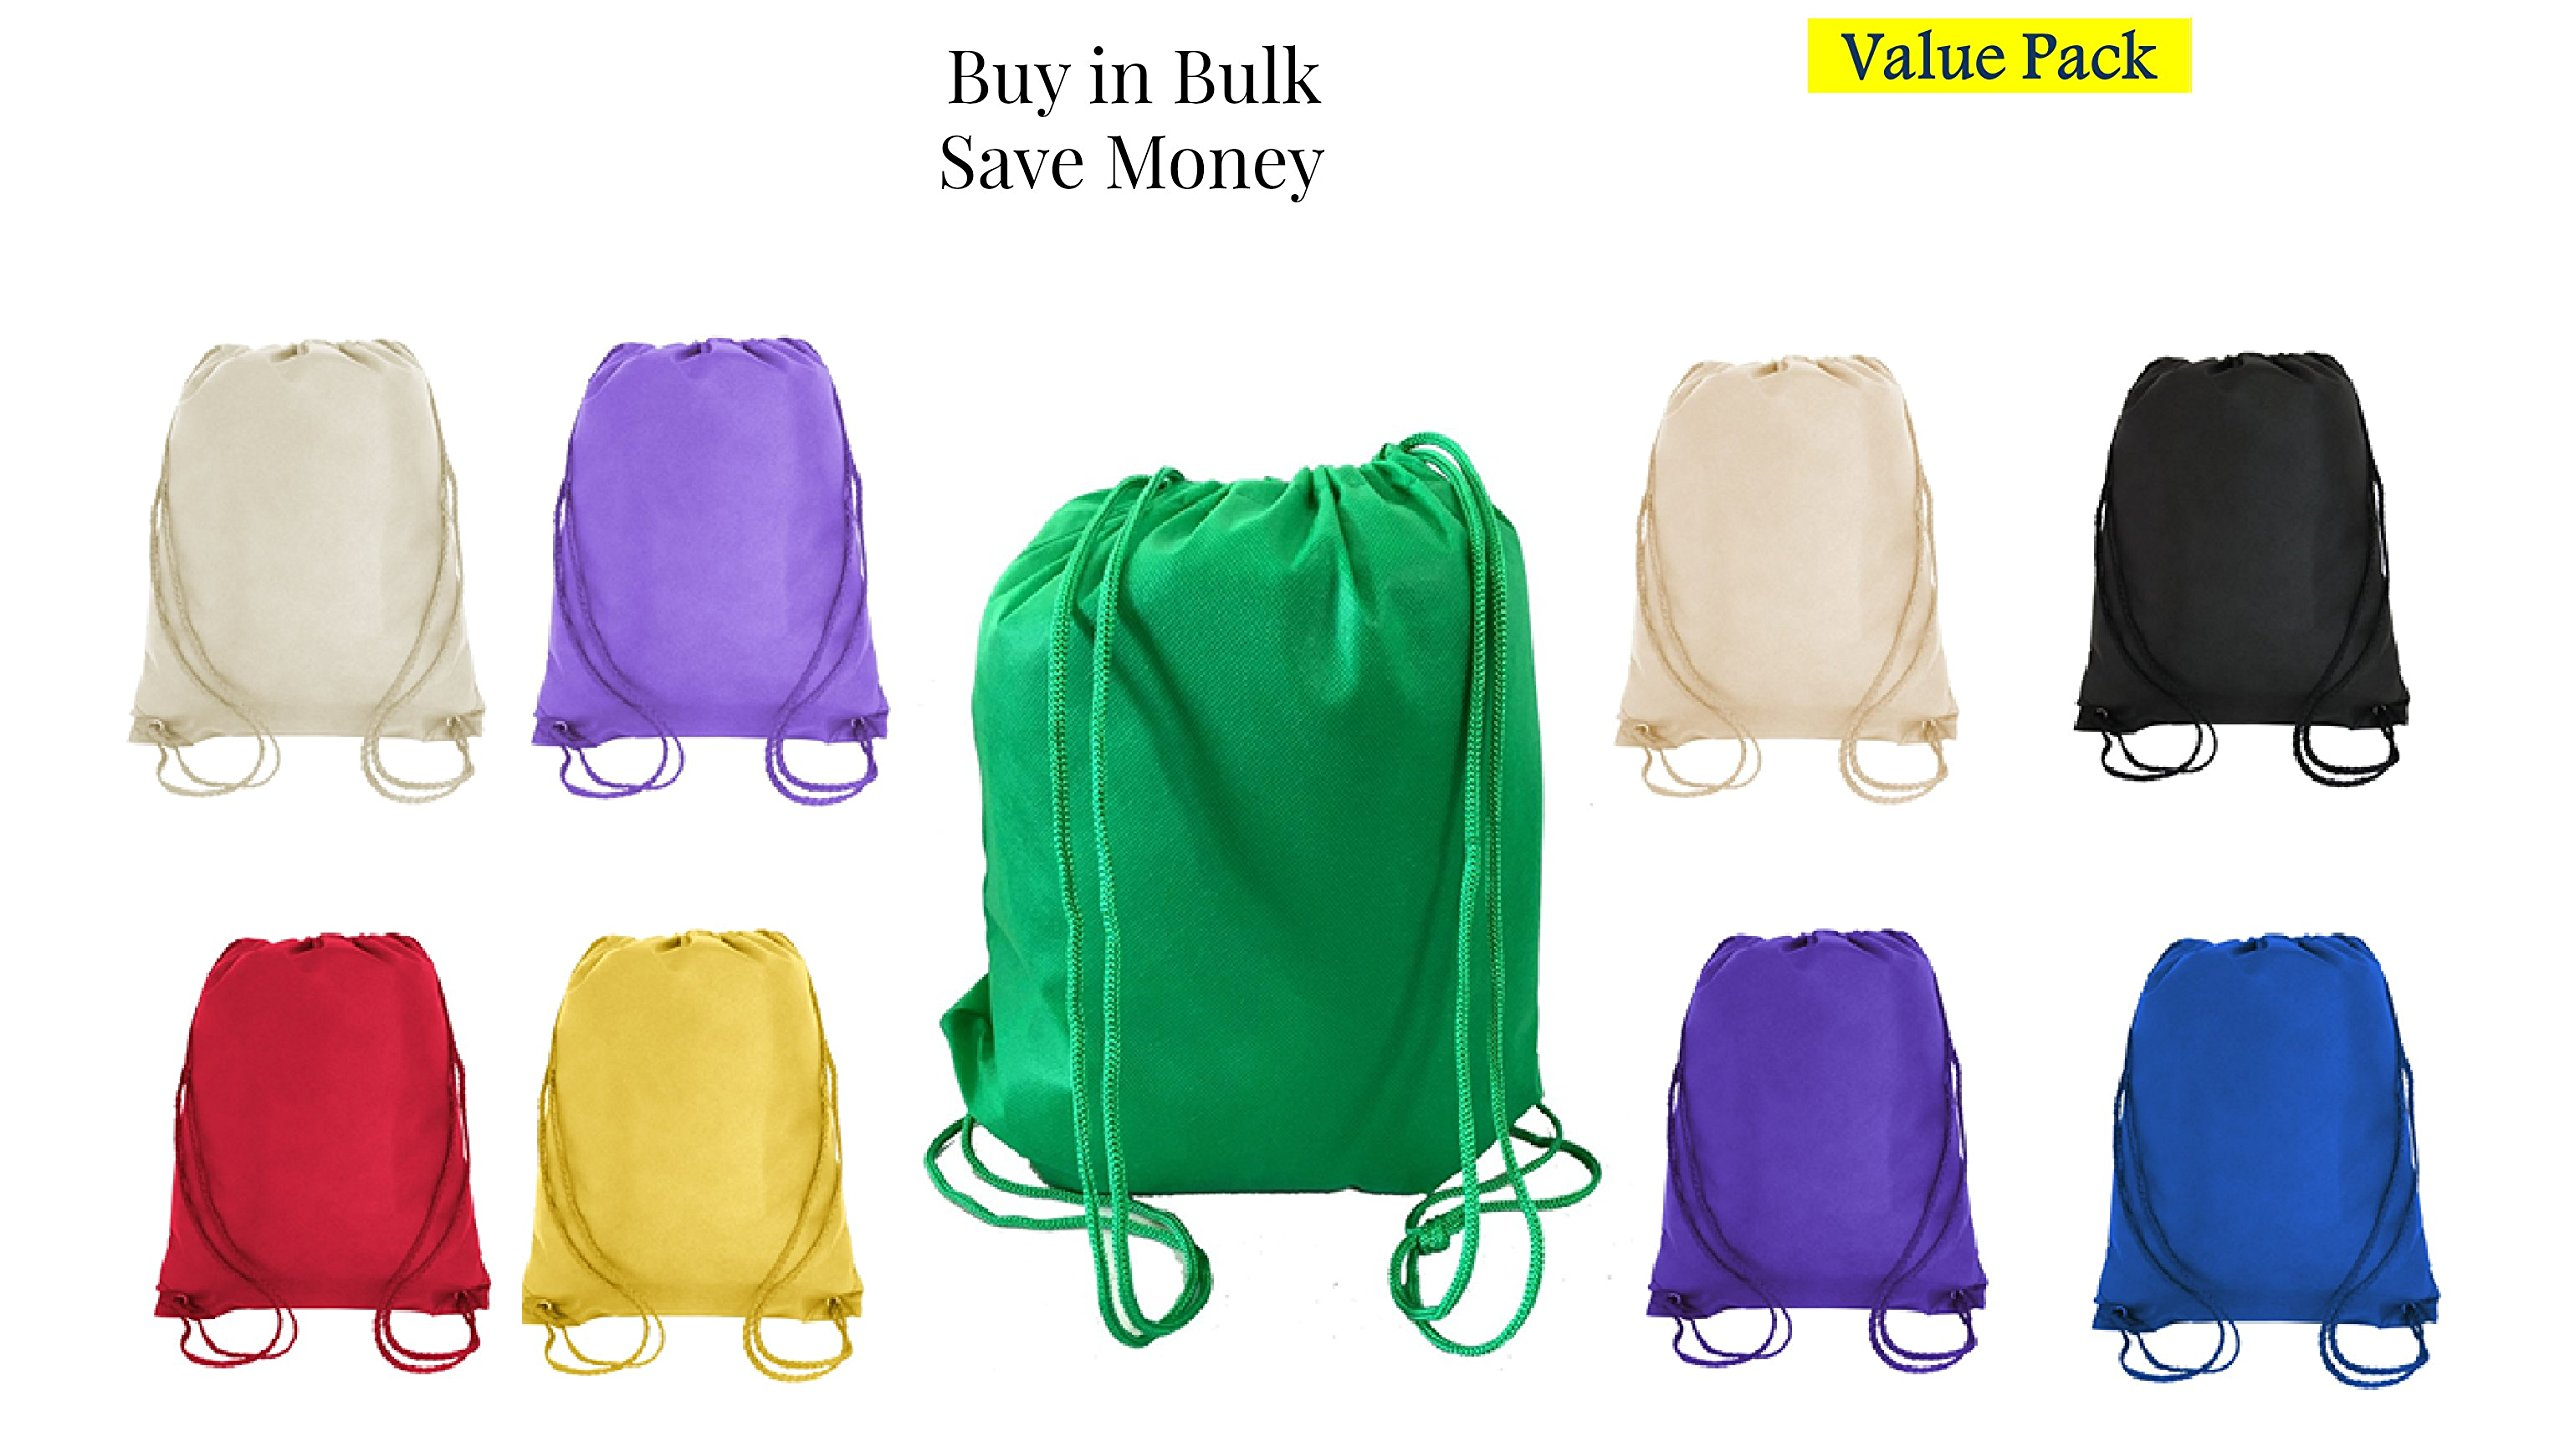 Value Pack- 100 Pack Mix Color Drawstring Bags, Small Size Junior Cinch Packs, Non-Woven Backpack (Mix) (Mix)